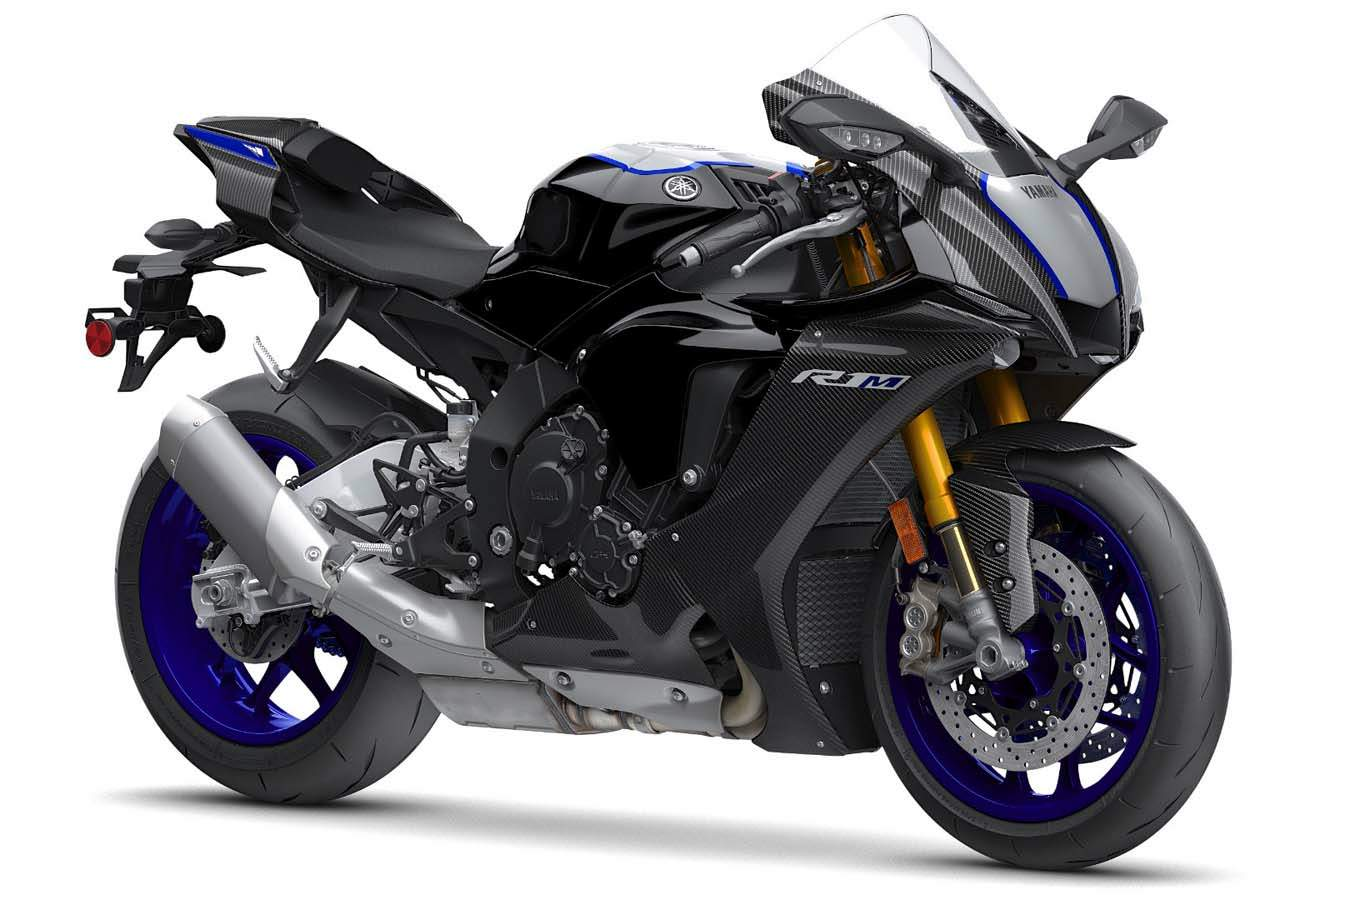 Yamaha YZF 1000 R1-M technical specifications